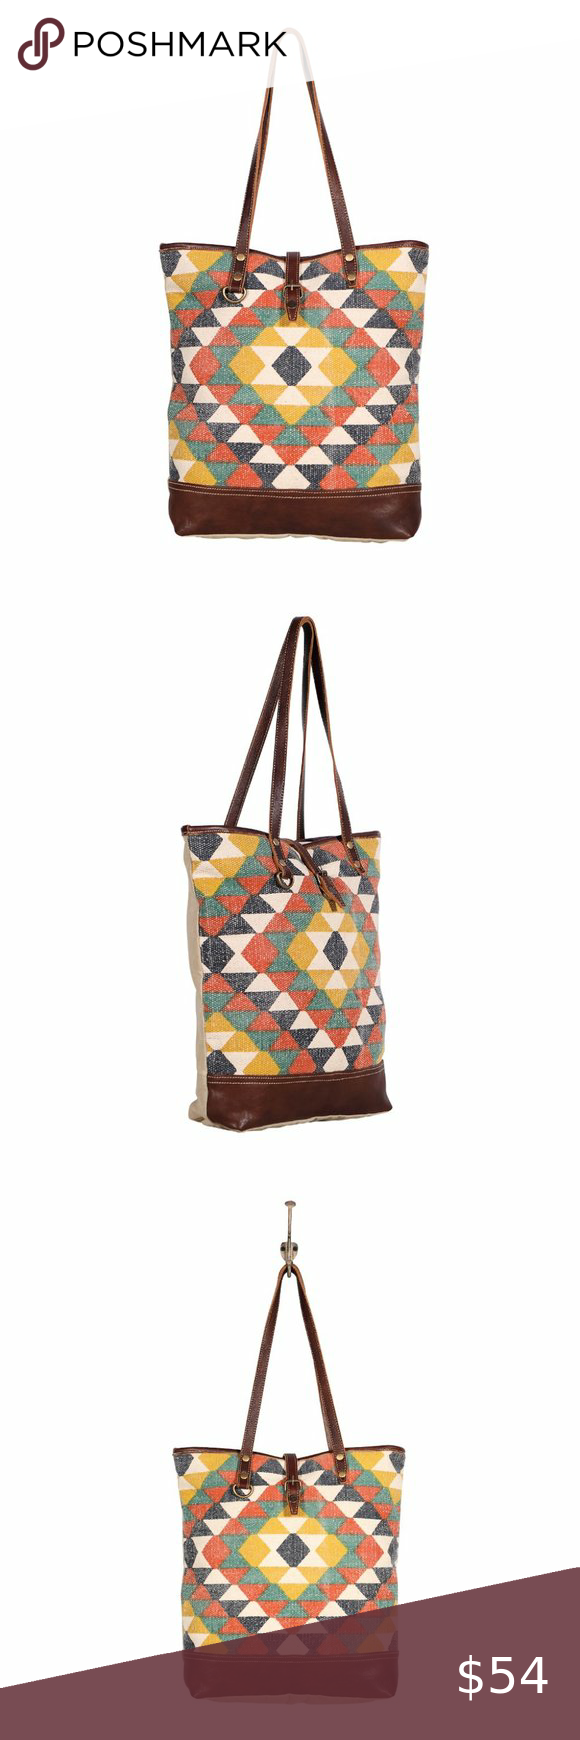 Myra Bag Quirky Quilty Large Tote In 2020 Bags Large Tote Leather Buckle Upcycled canvas handbags myra handbags offers a nature friendly canvas & leather handbag. pinterest